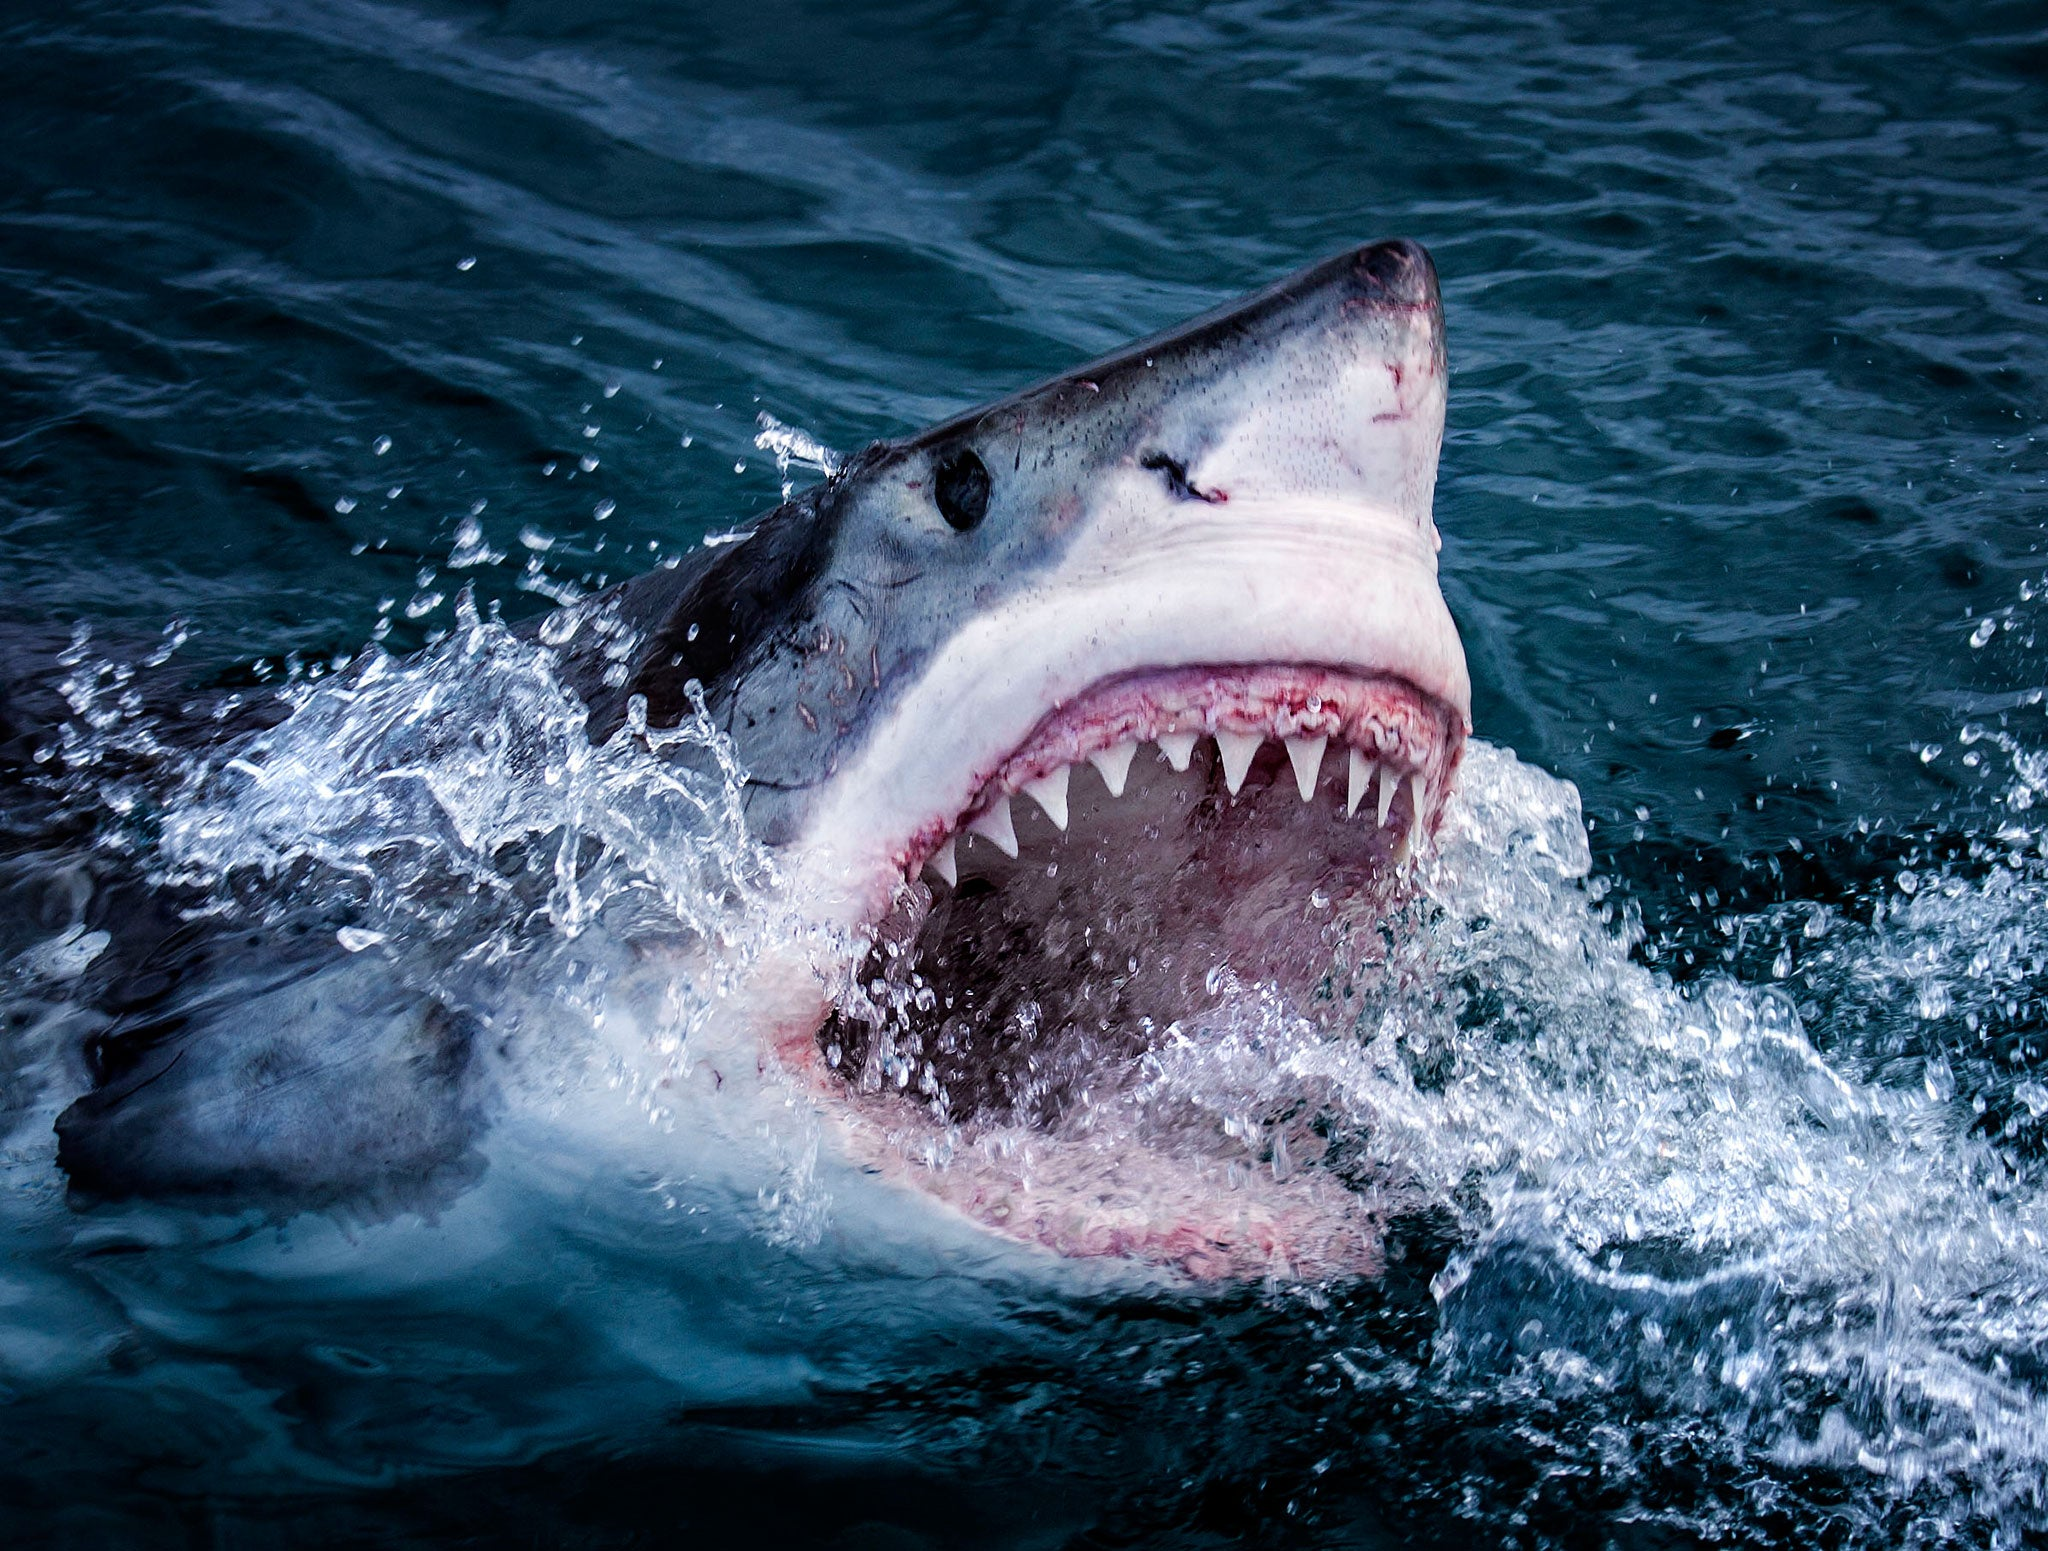 Great white sharks - the misunderstood giants with a softer